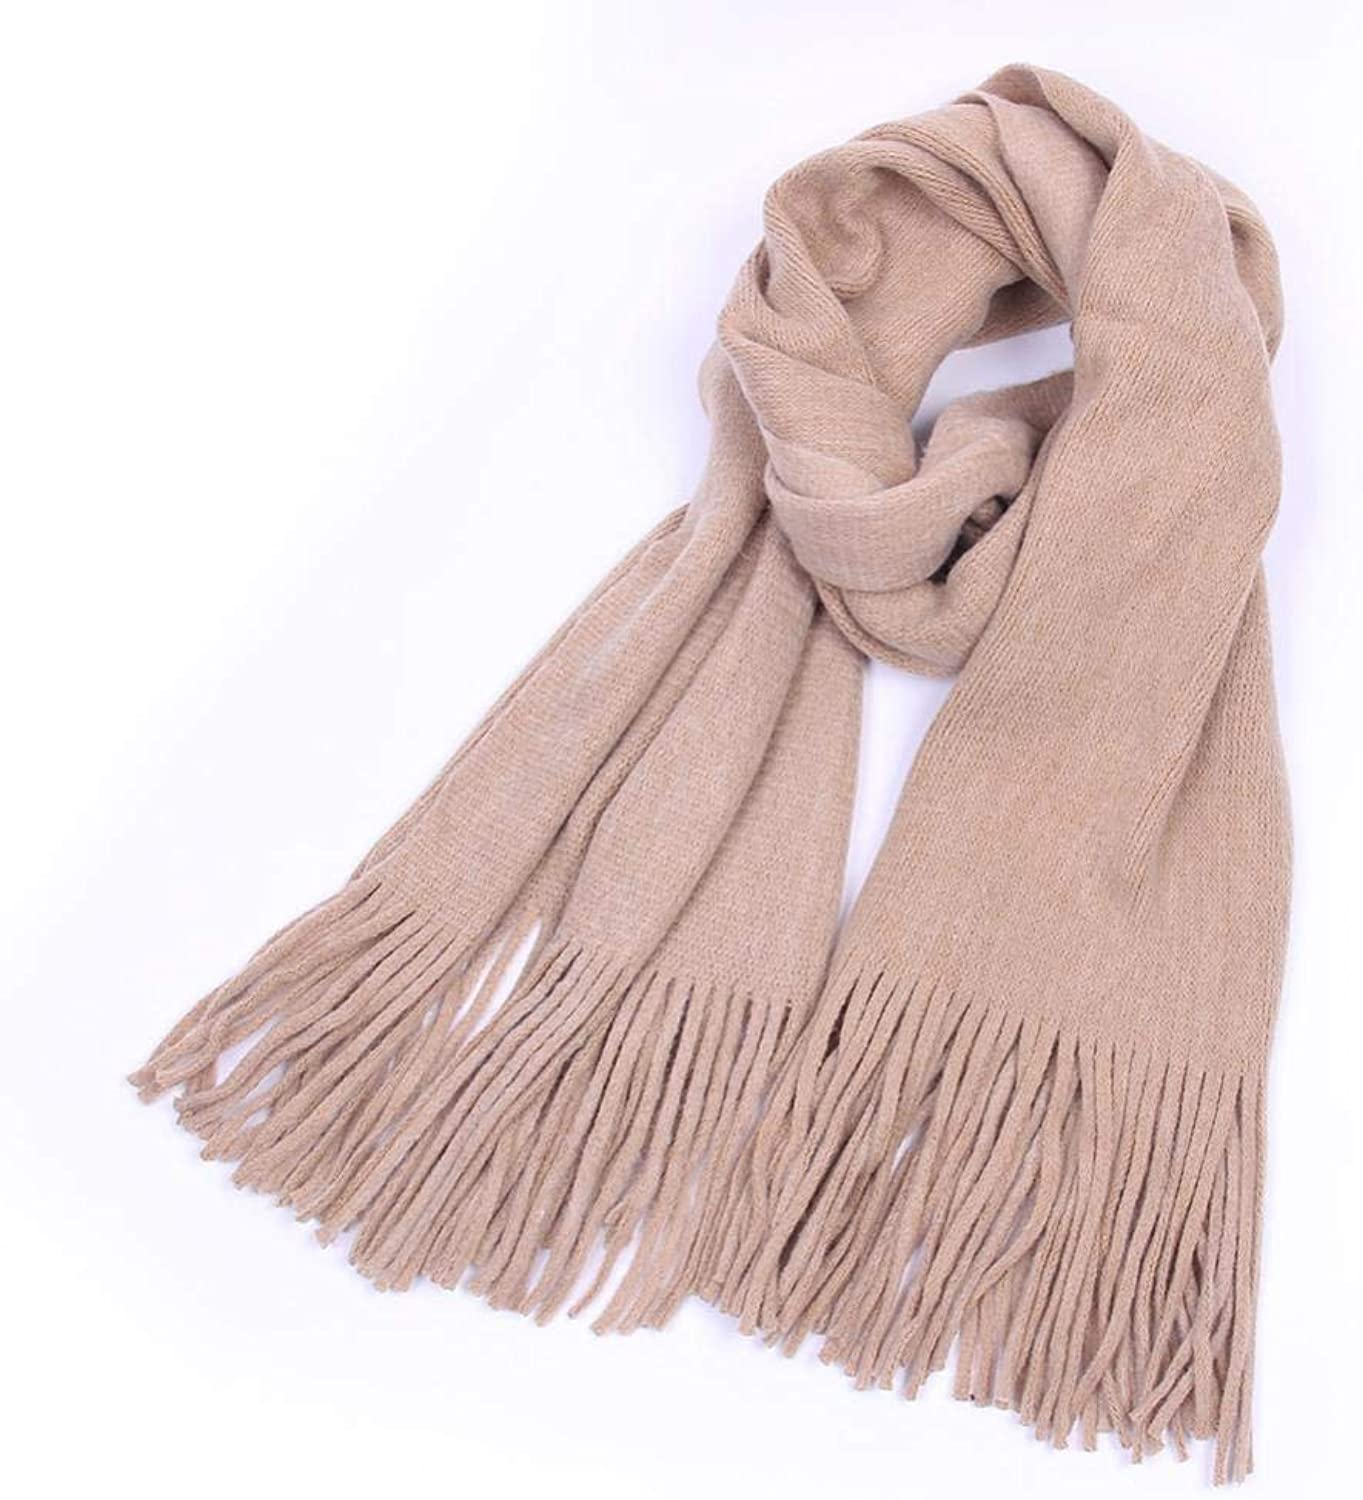 Gquan Fashion Scarf, Student Knit Jumper Long Scarf Women's Winter Thickened Warm Single